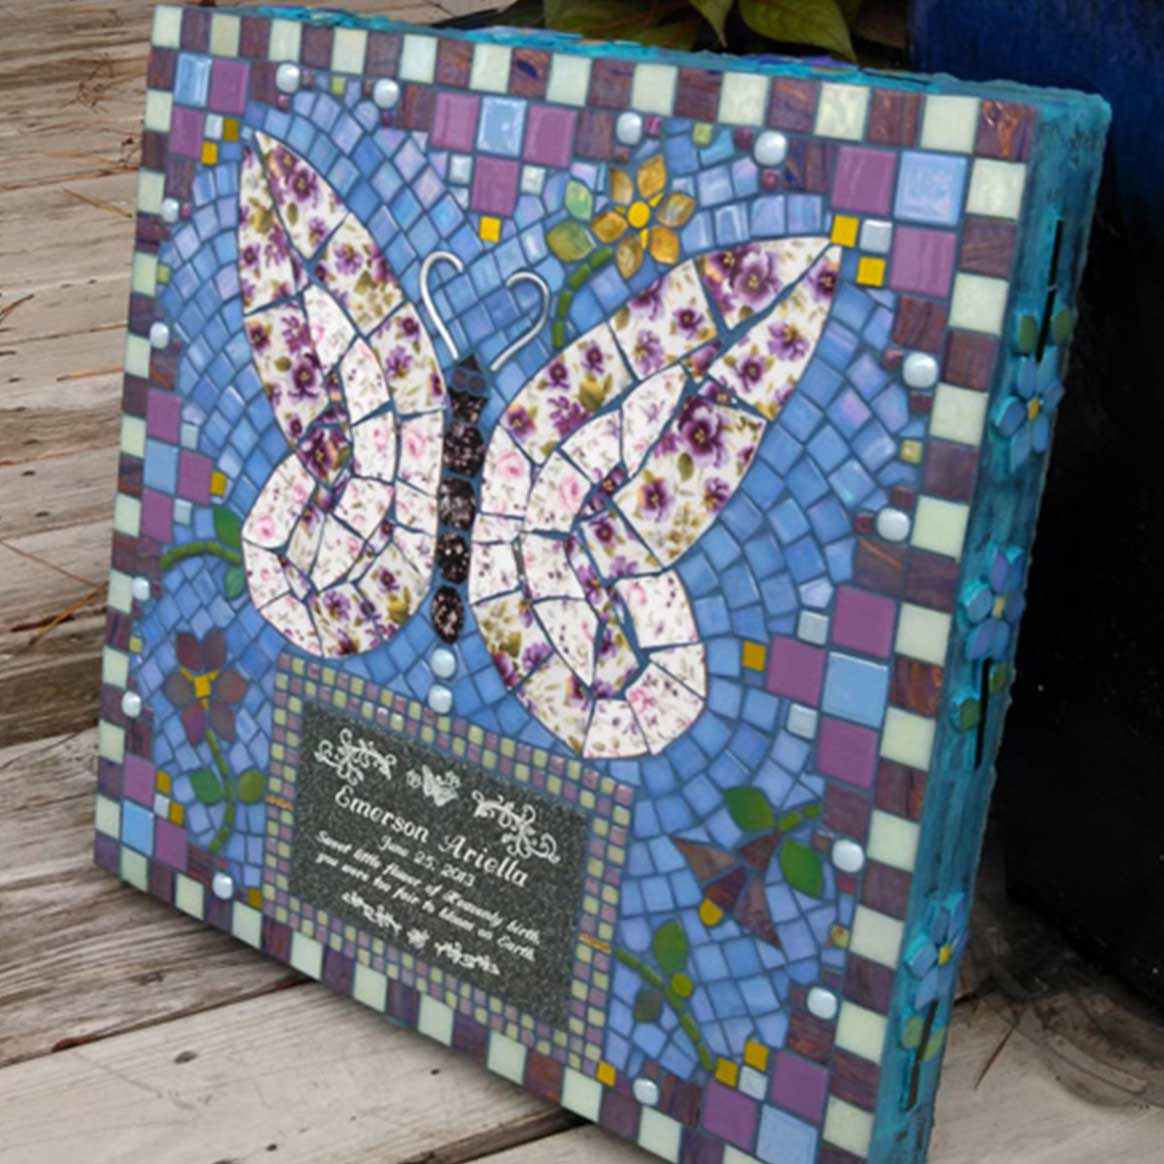 Mosaic Memorial Garden Art Stone of Emmy's Butterfly by Water's End Studio Artist Linda Solby